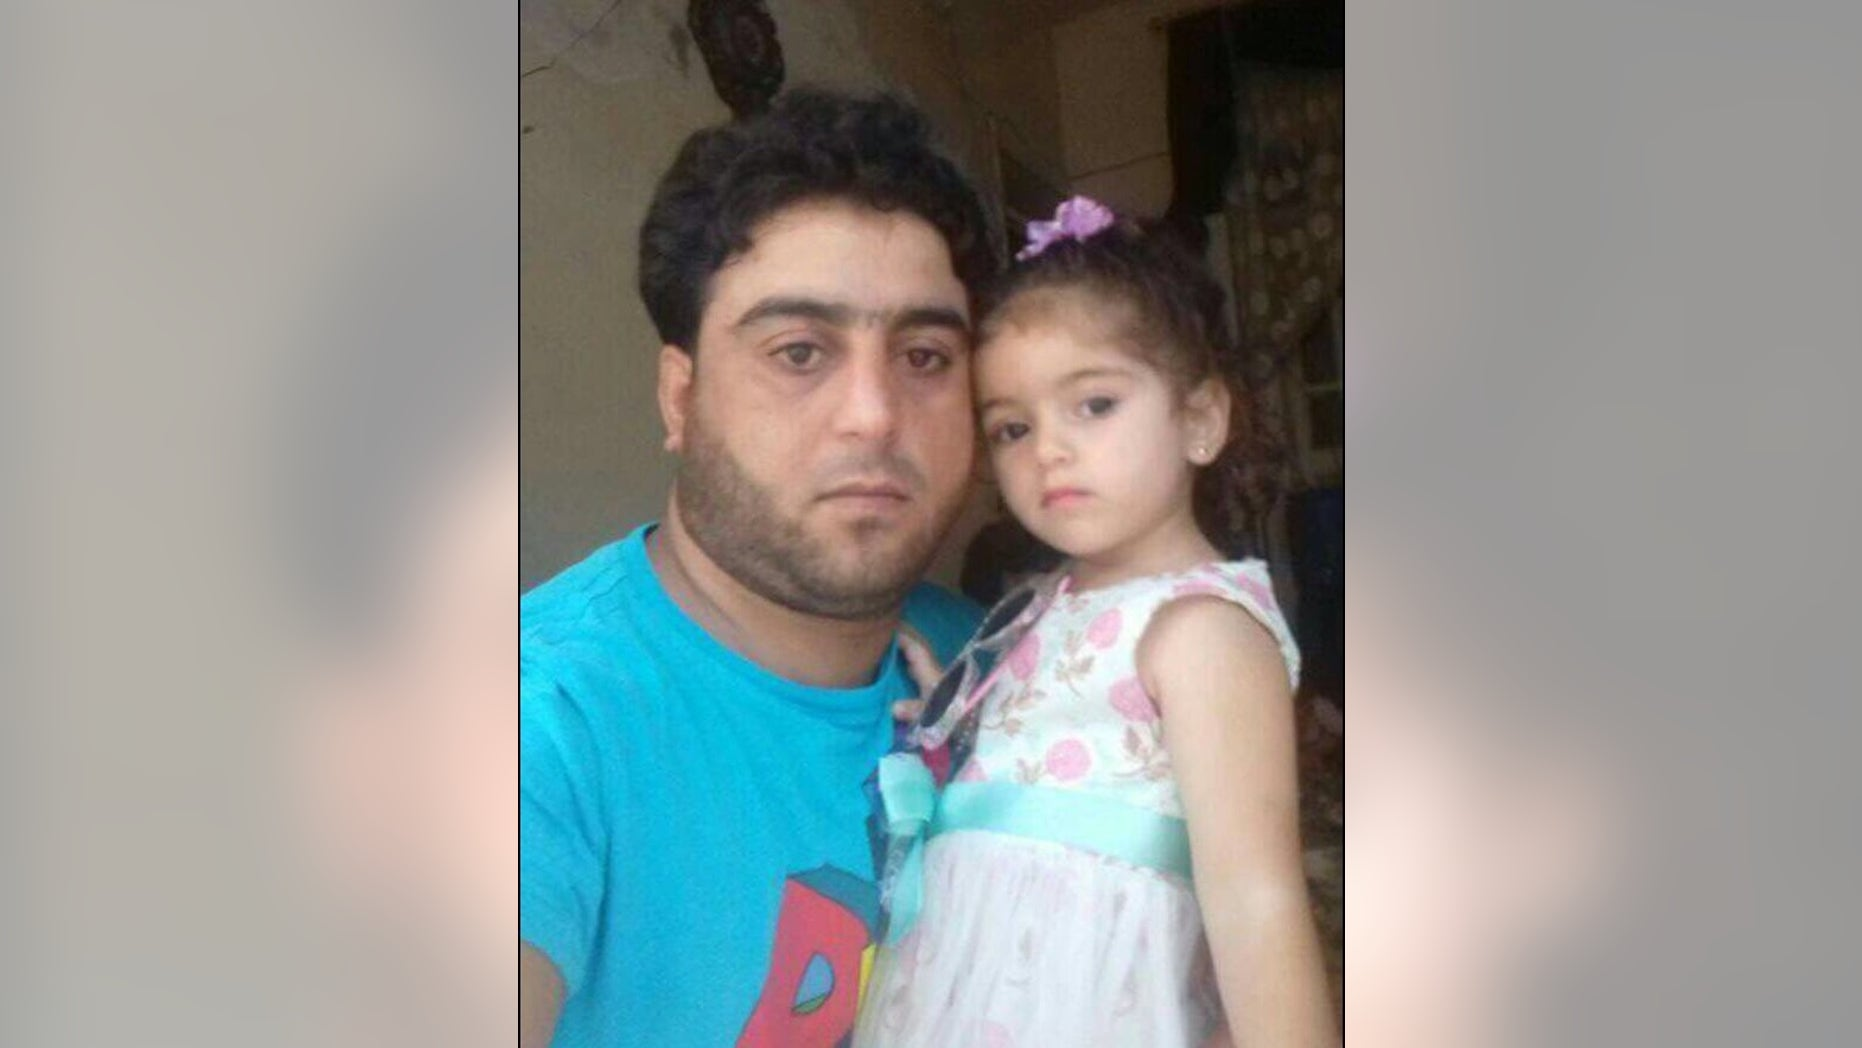 Ghazwan, a Syrian amputee in the rebel-held stronghold of Idlib, pictured with his daughter. He is trying to sell his prosthetic foot to pay back loans and support his family.